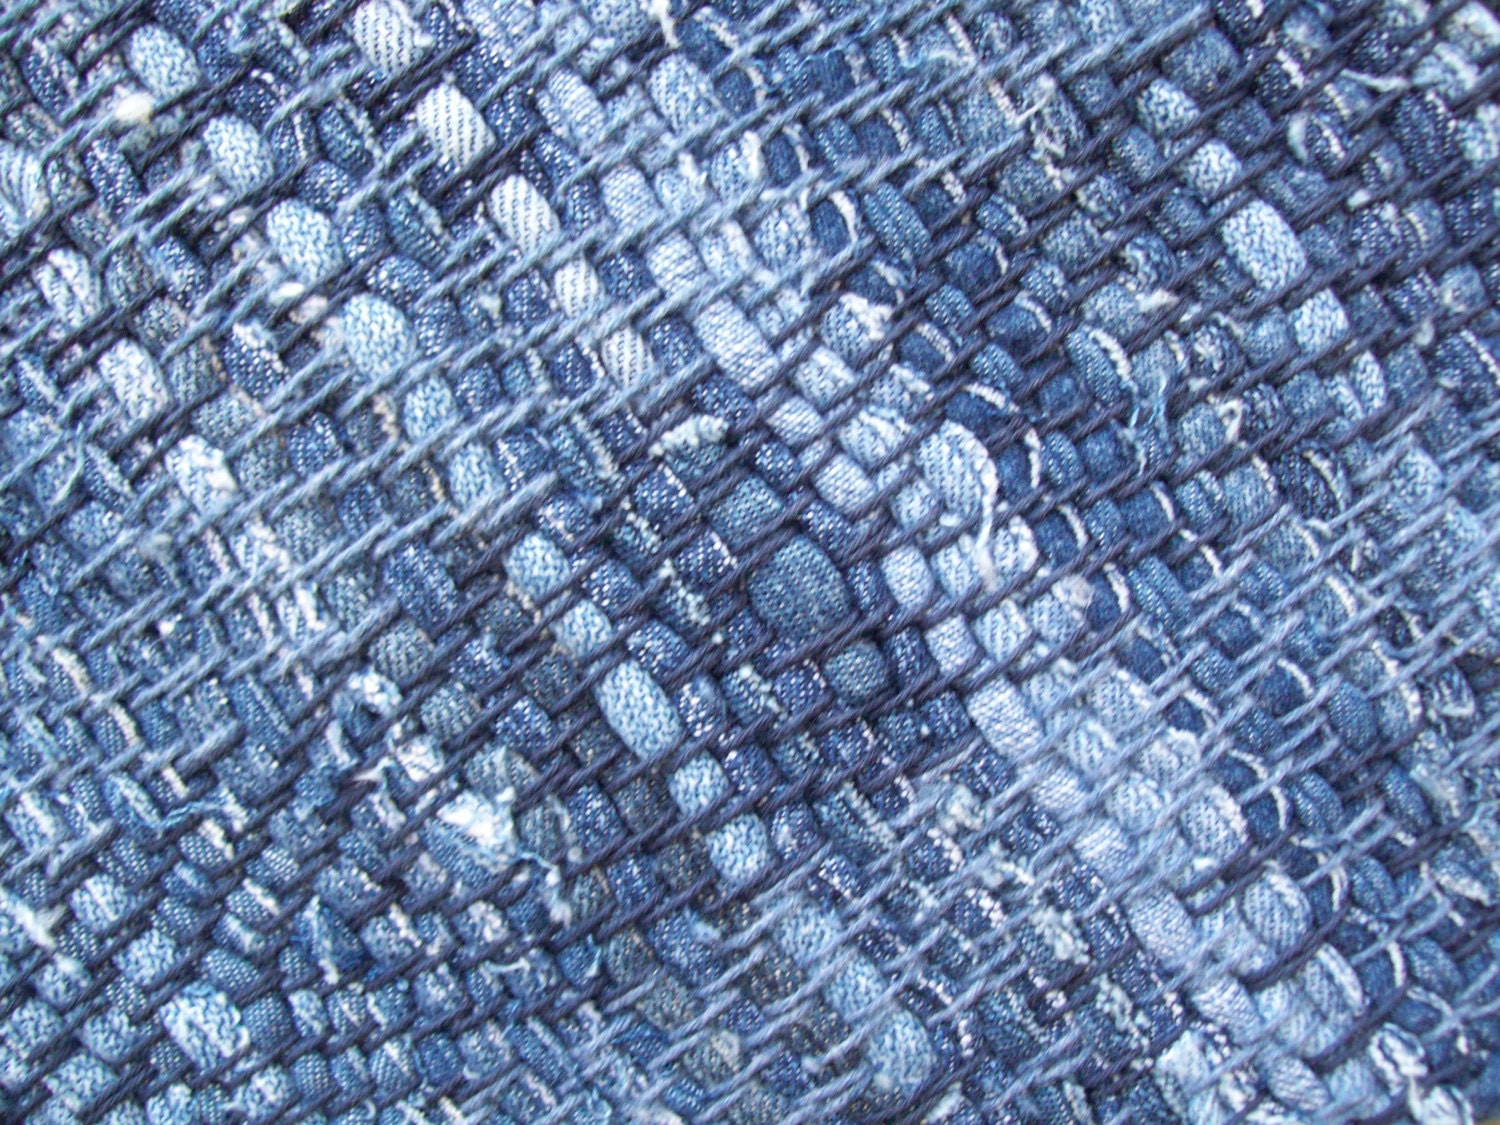 Rag Rug Denim Recycled Blue Jeans